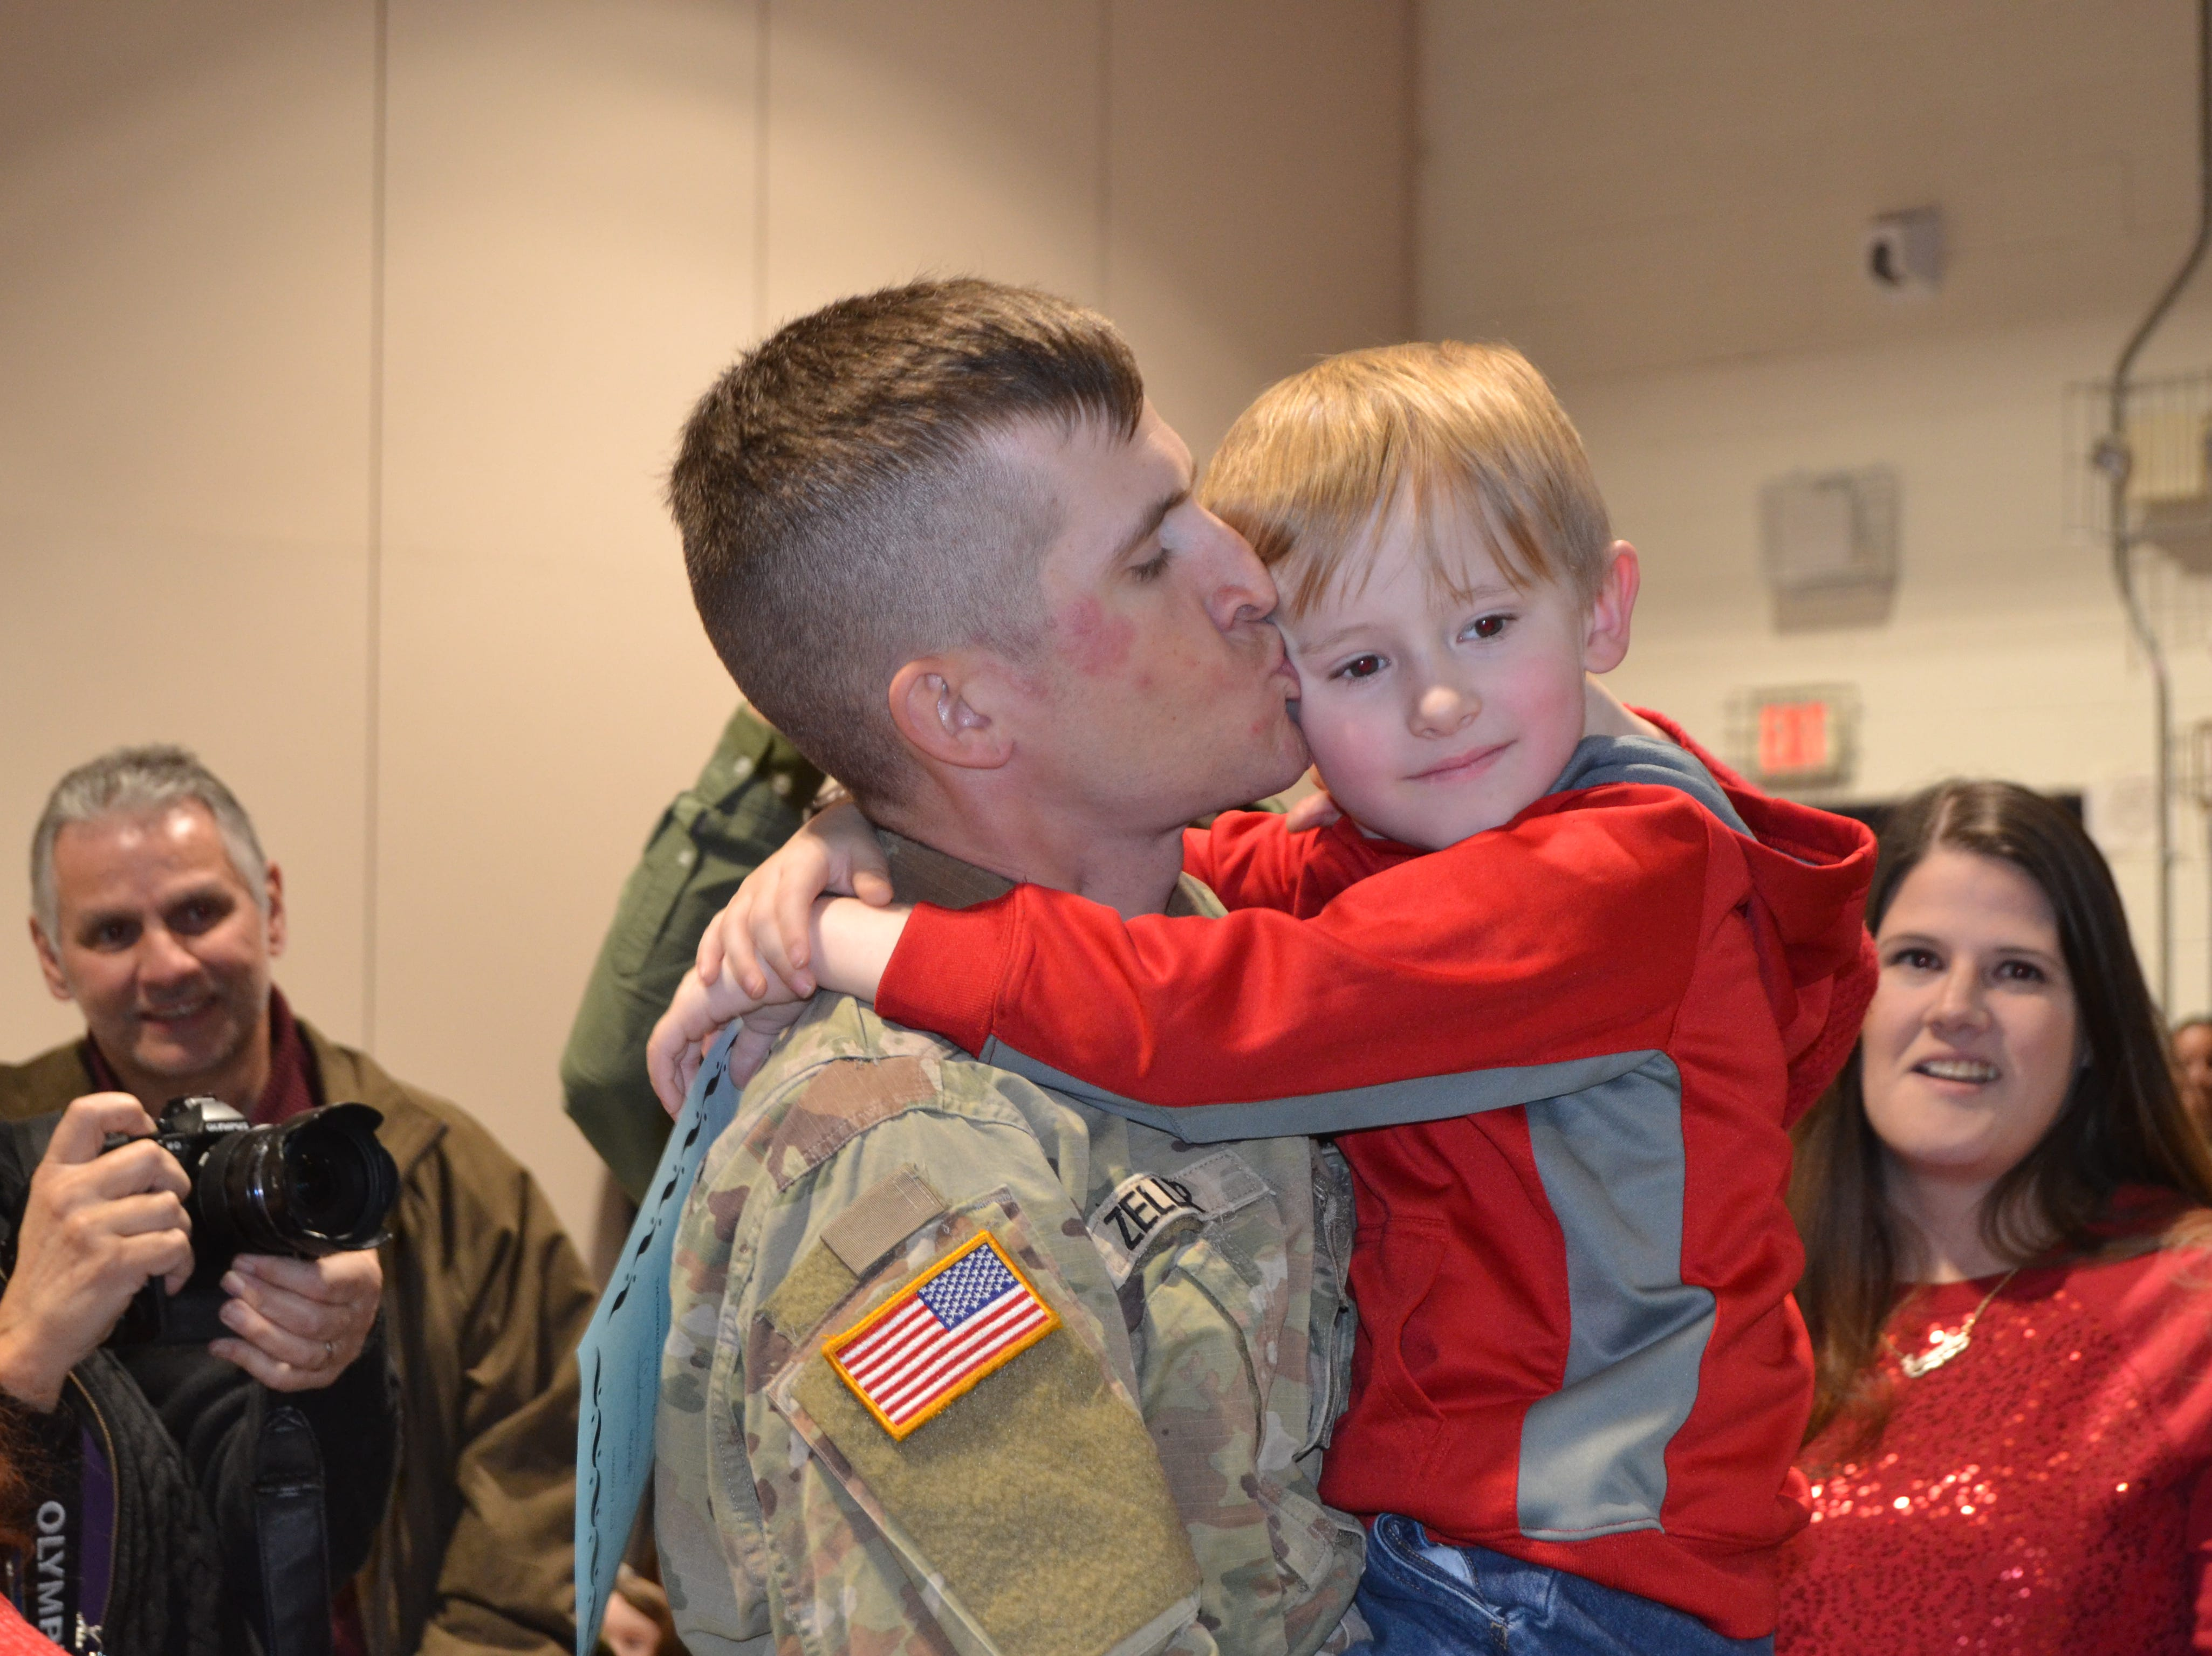 On Monday, Timothy Zeller, a private in the U.S. Army, who has been stationed in southern California since early July, was reunited with his son, Abel Towers-Zeller, 6, during a surprise visit to  Raymond E. Voorhees Elementary School in Old Bridge on Monday. They were reunited during an assembly with the theme of caring.